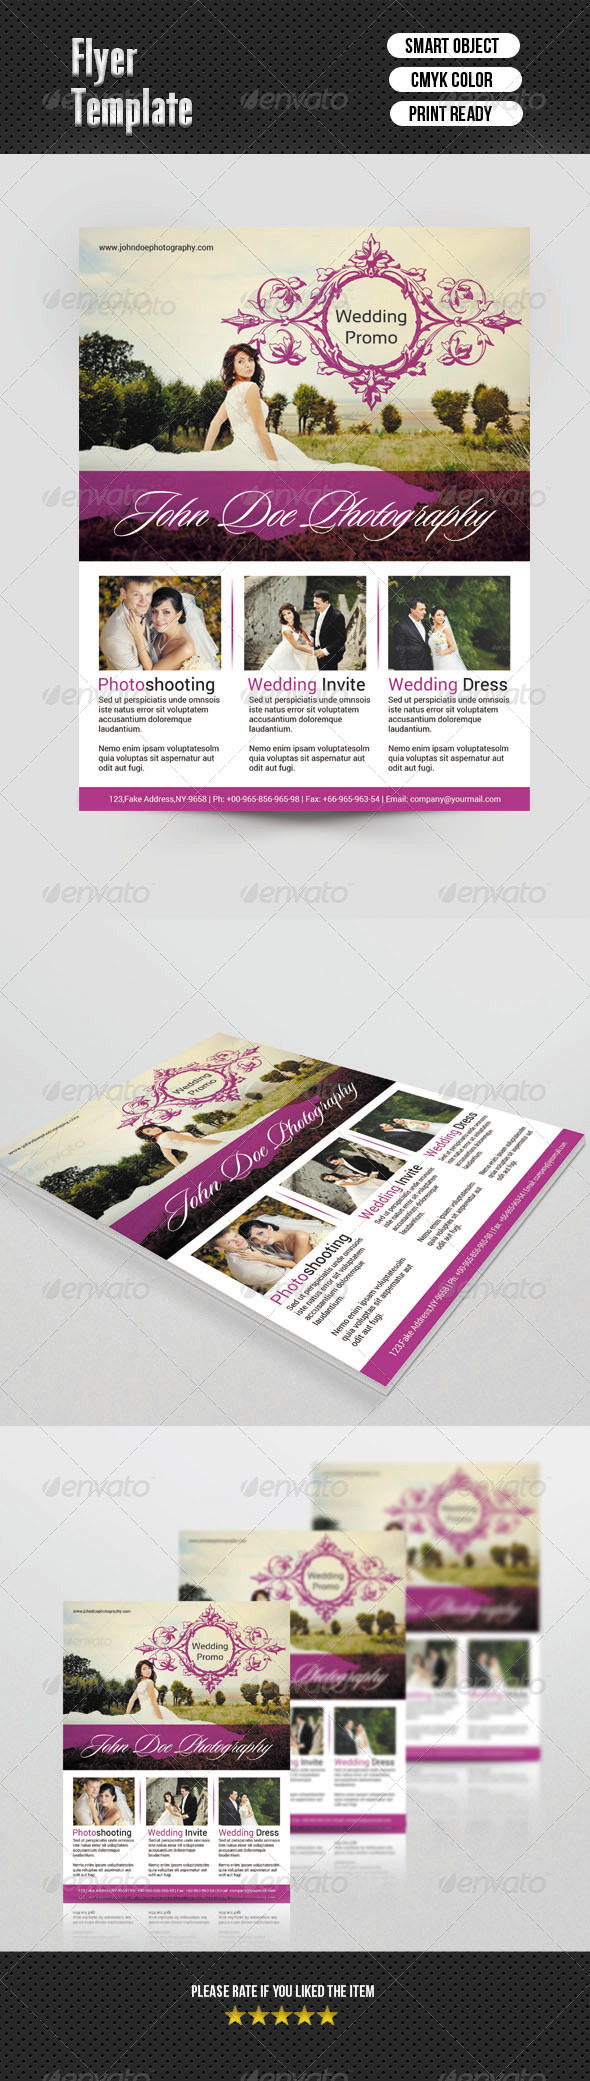 Wedding Photography Flyer - Events Flyers